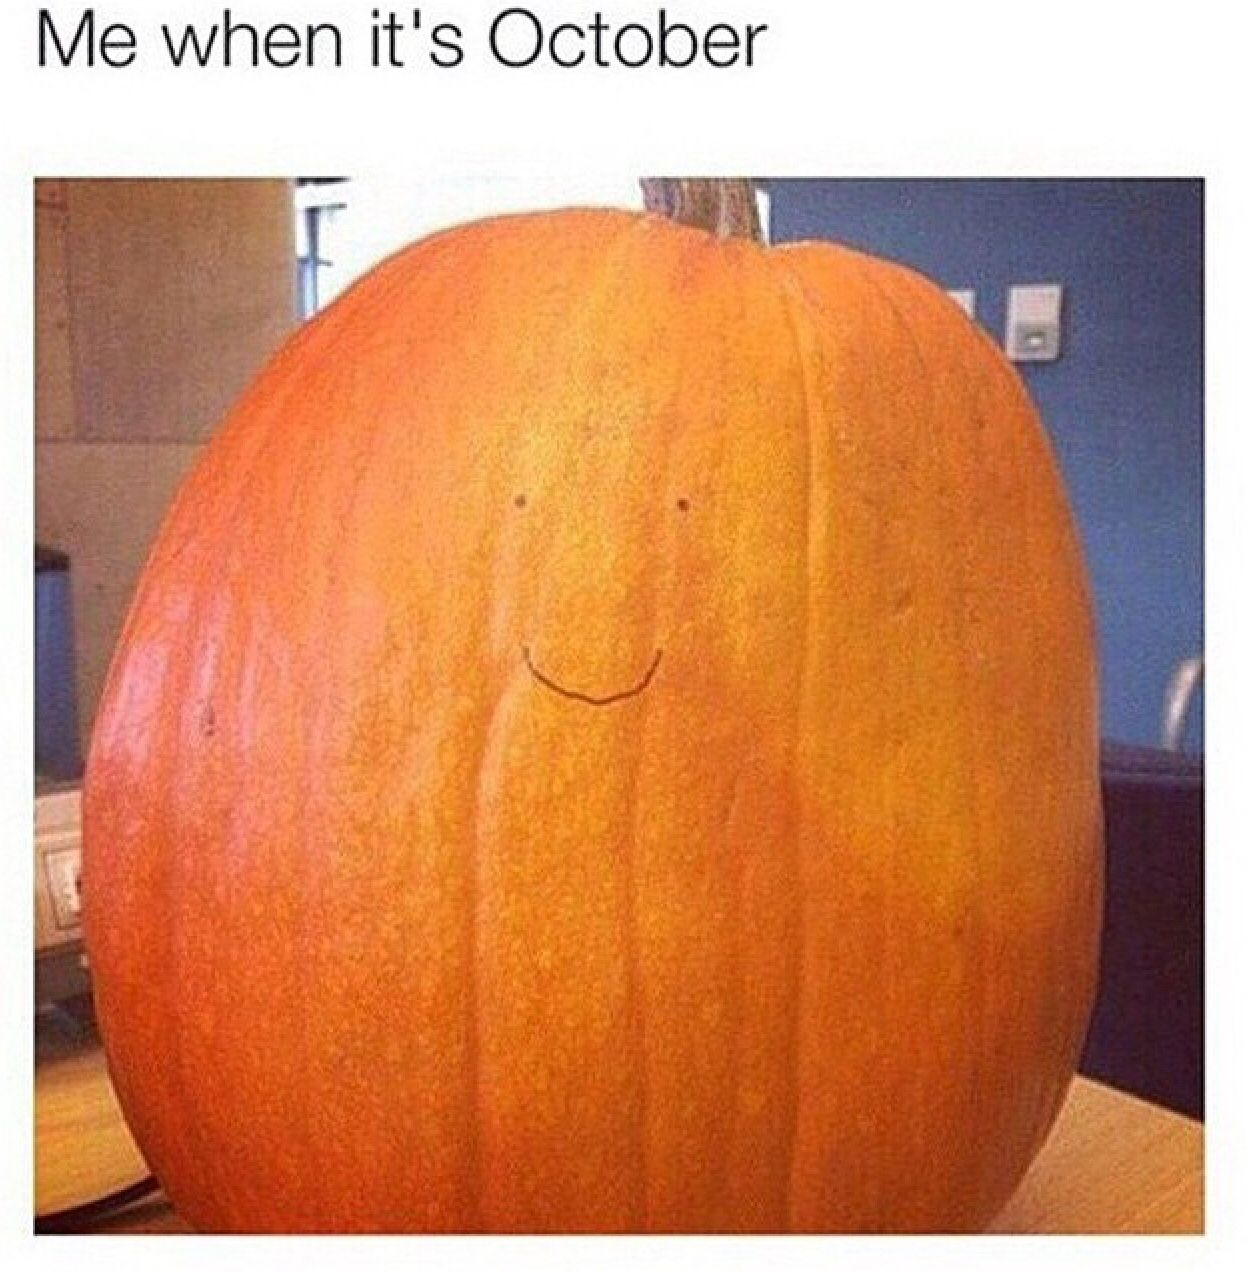 Pin by Hannah Lux on Funny funny funny Pumpkin, Food